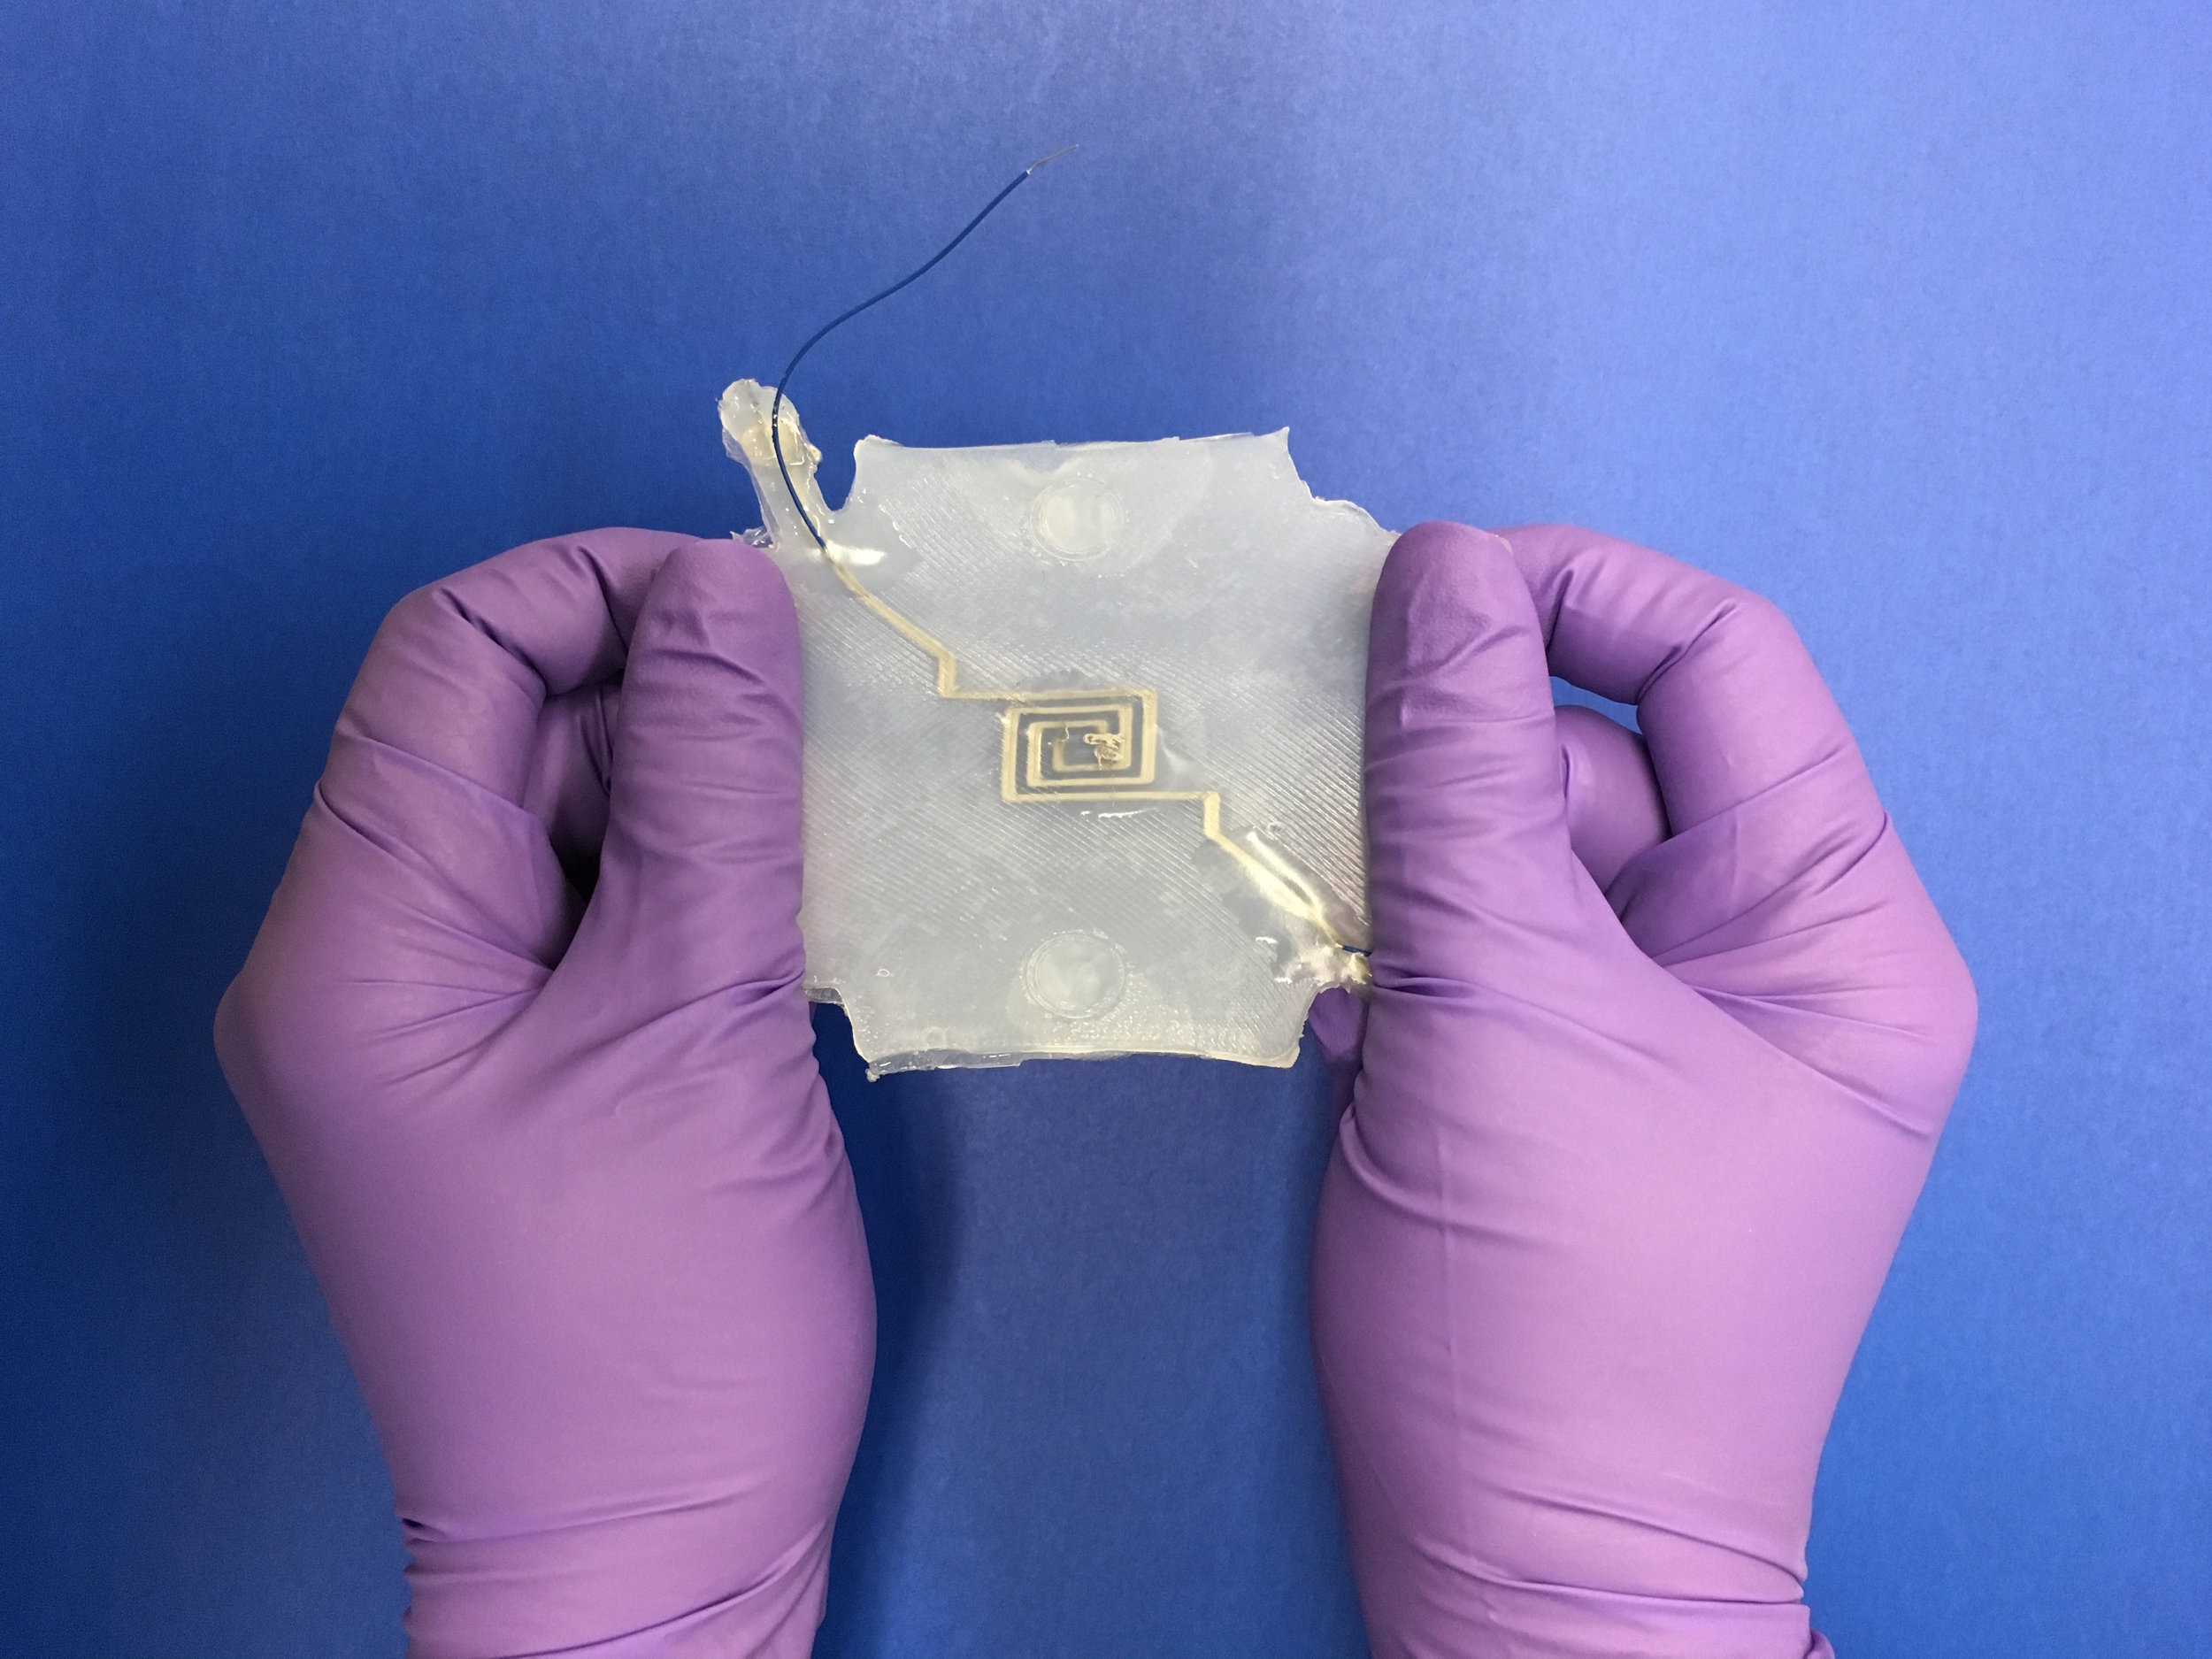 One of Kristen's stretchy strain sensor, not MEMS (so you can see it)